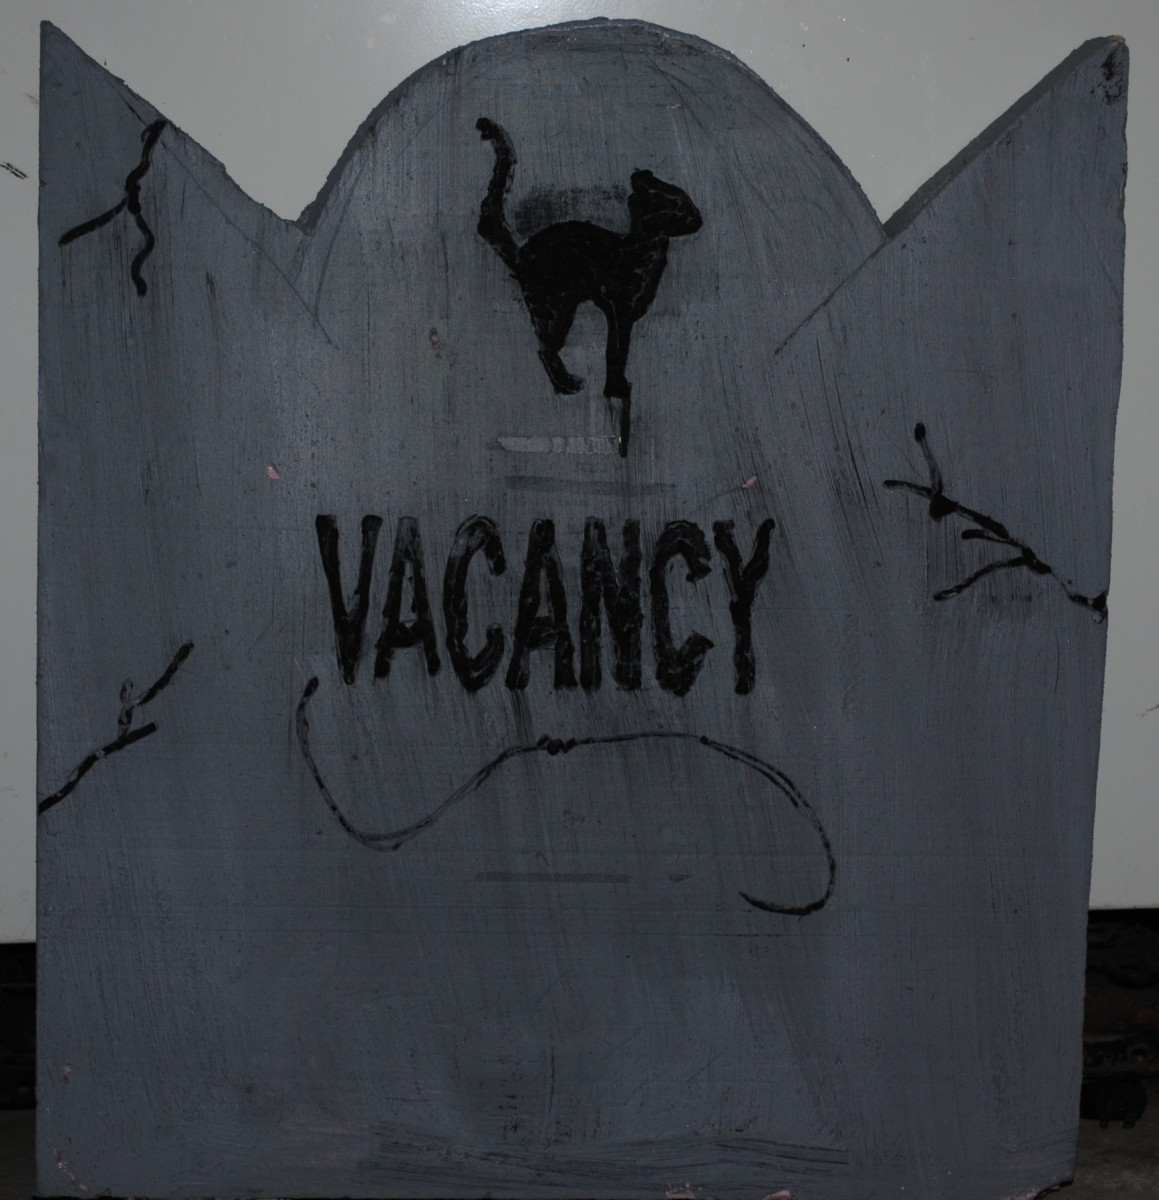 One of my funny tombstones for Halloween